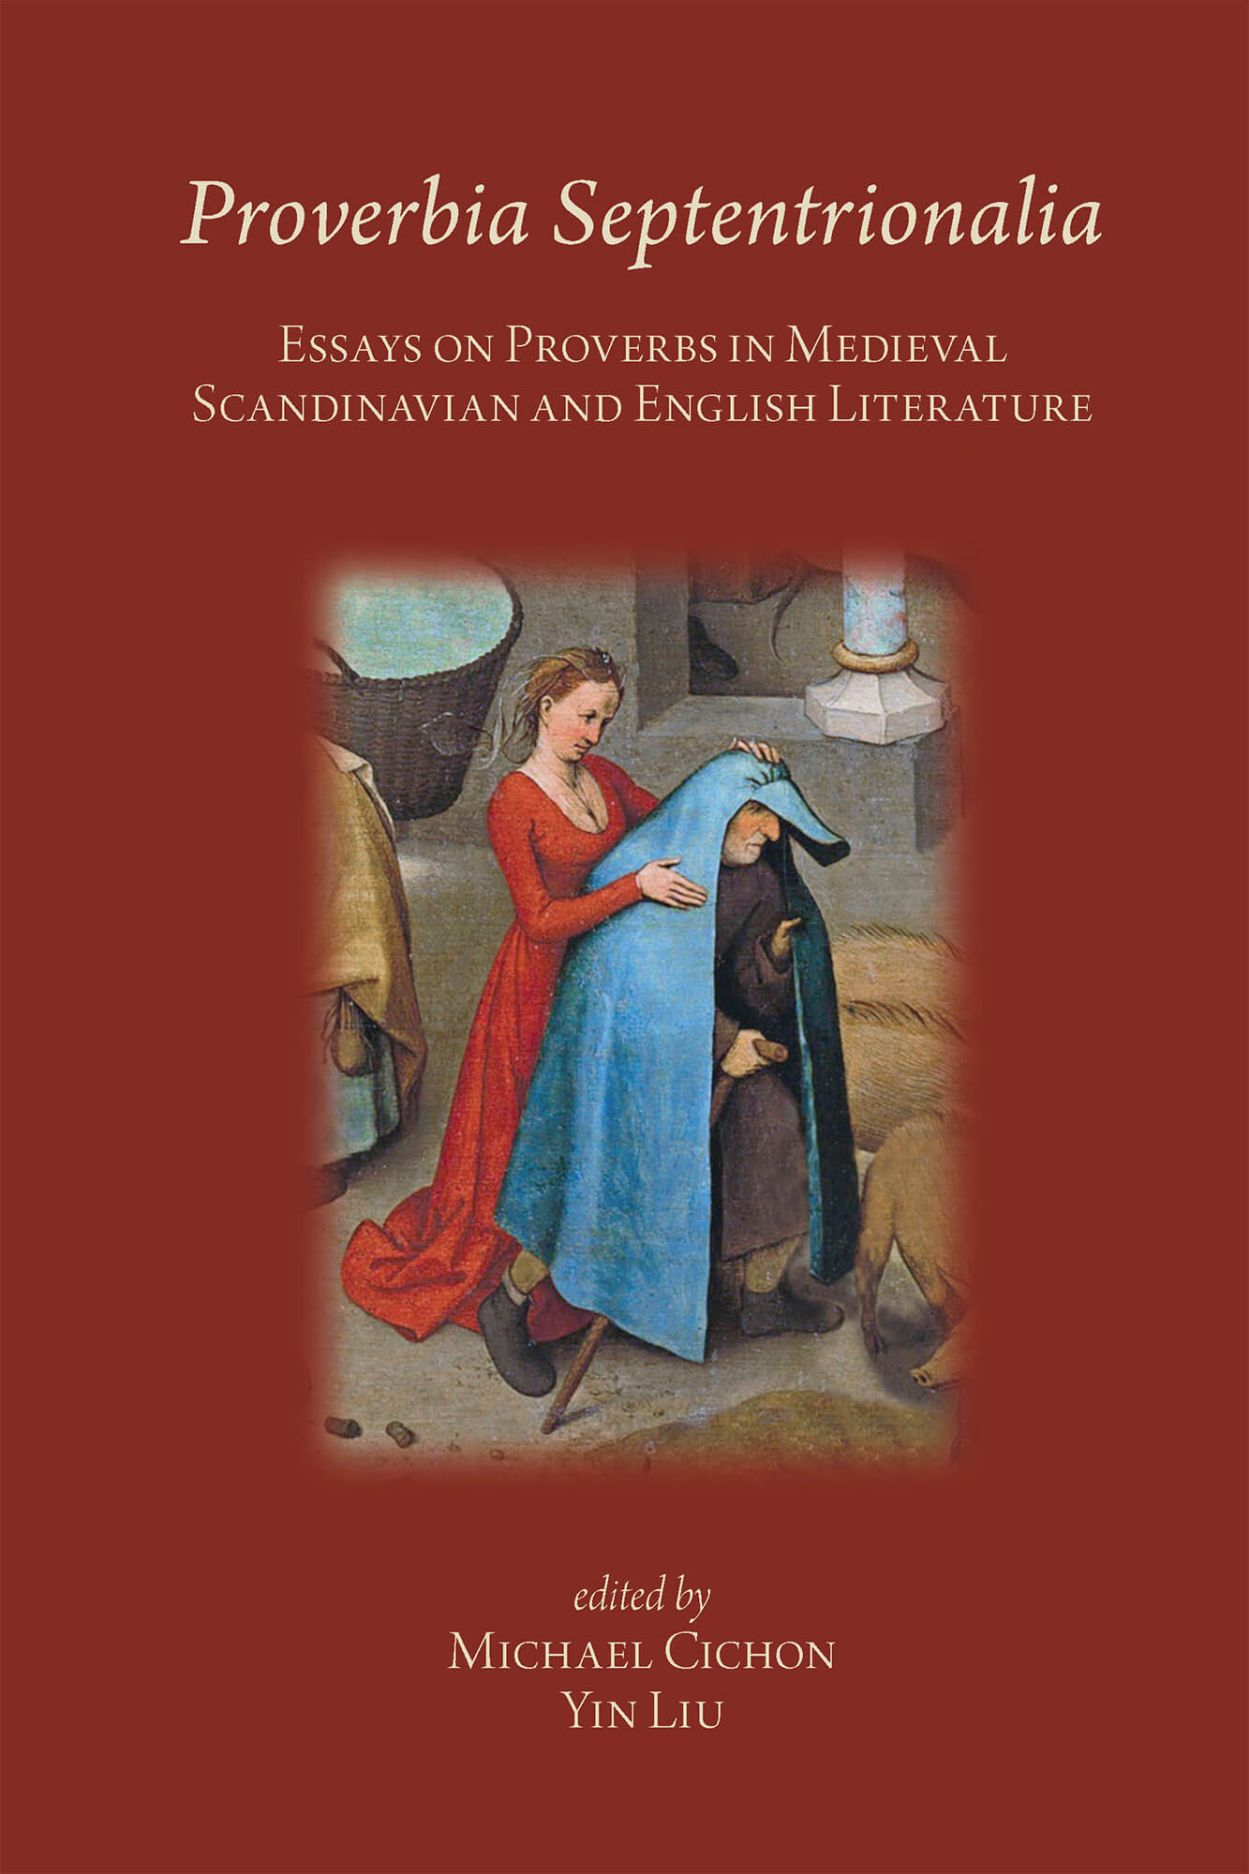 Proverbia Septentrionalia: Essays on Proverbs in Medieval